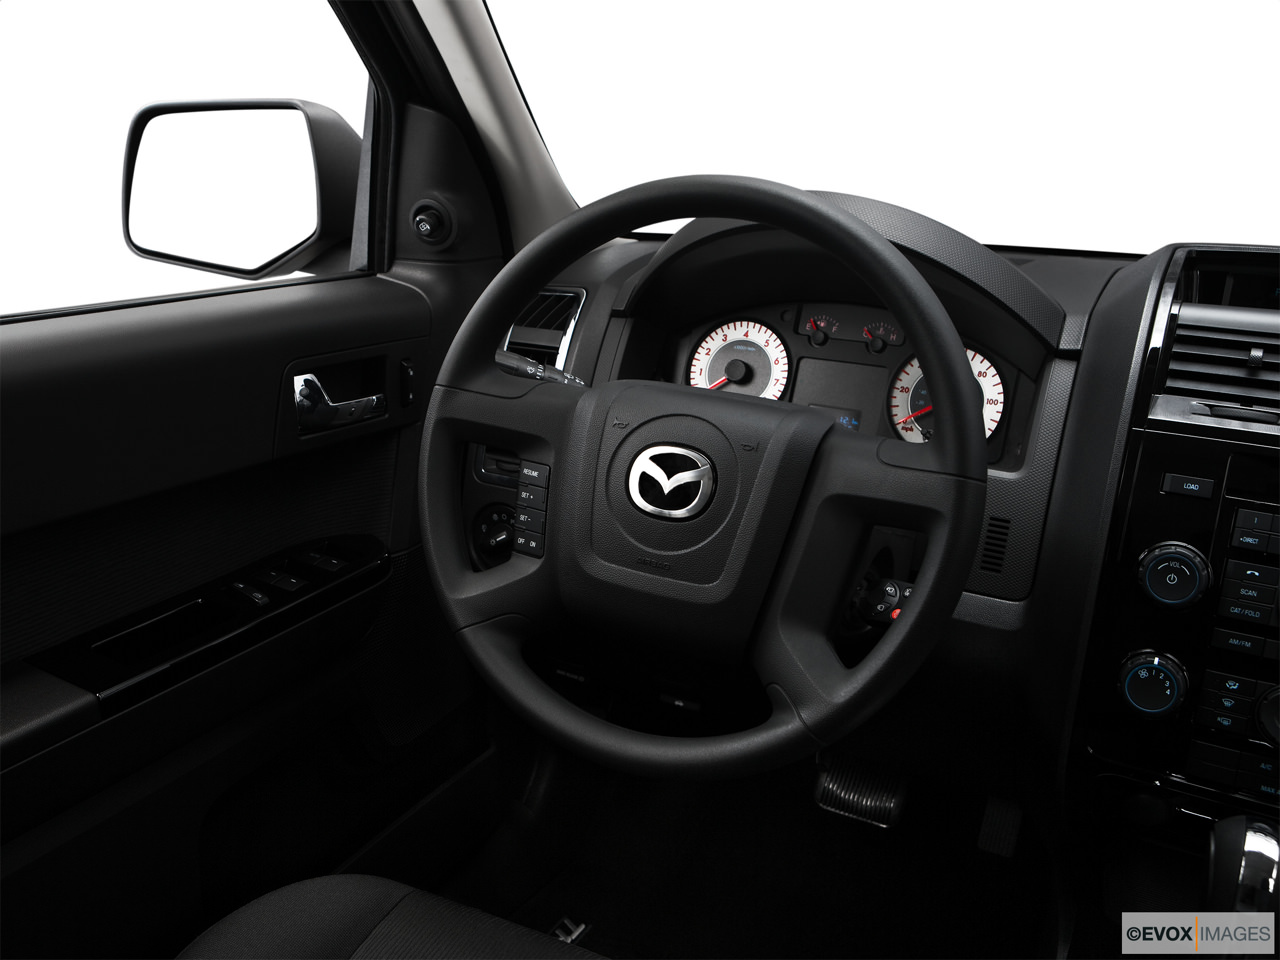 Mazda Tribute Hybrid 2009 Interior